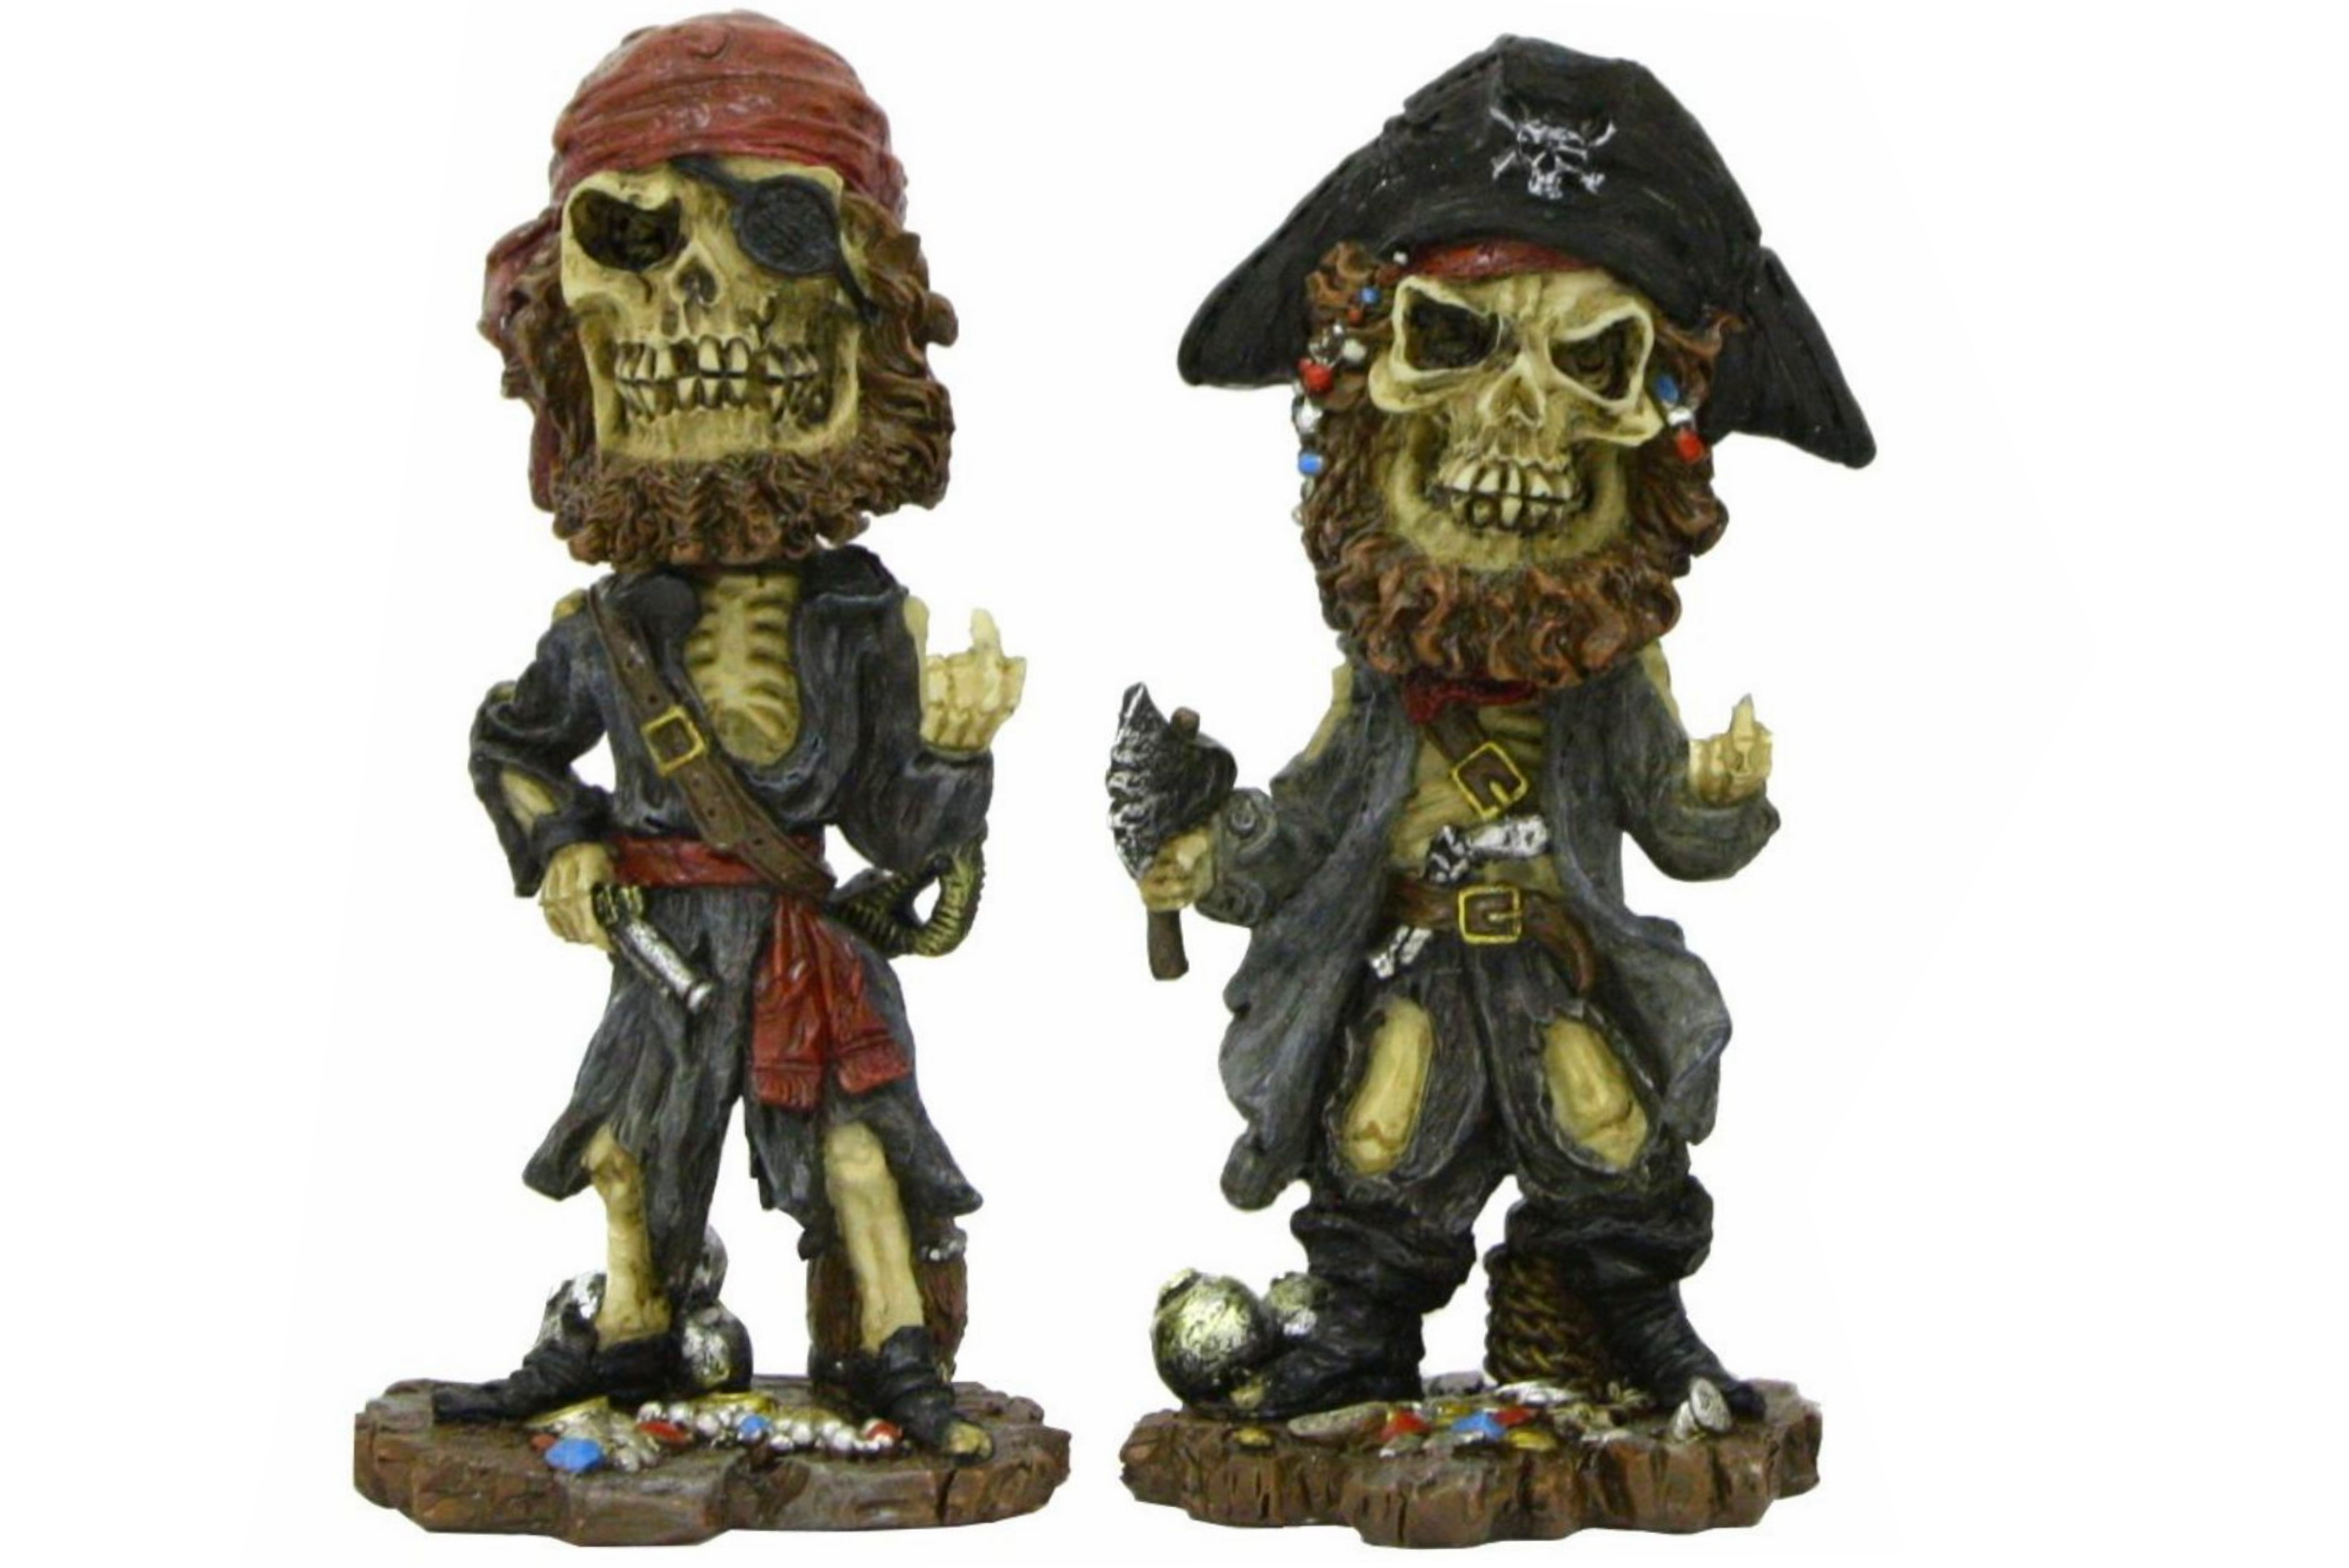 Resin Nodding Pirates - 4 Assorted